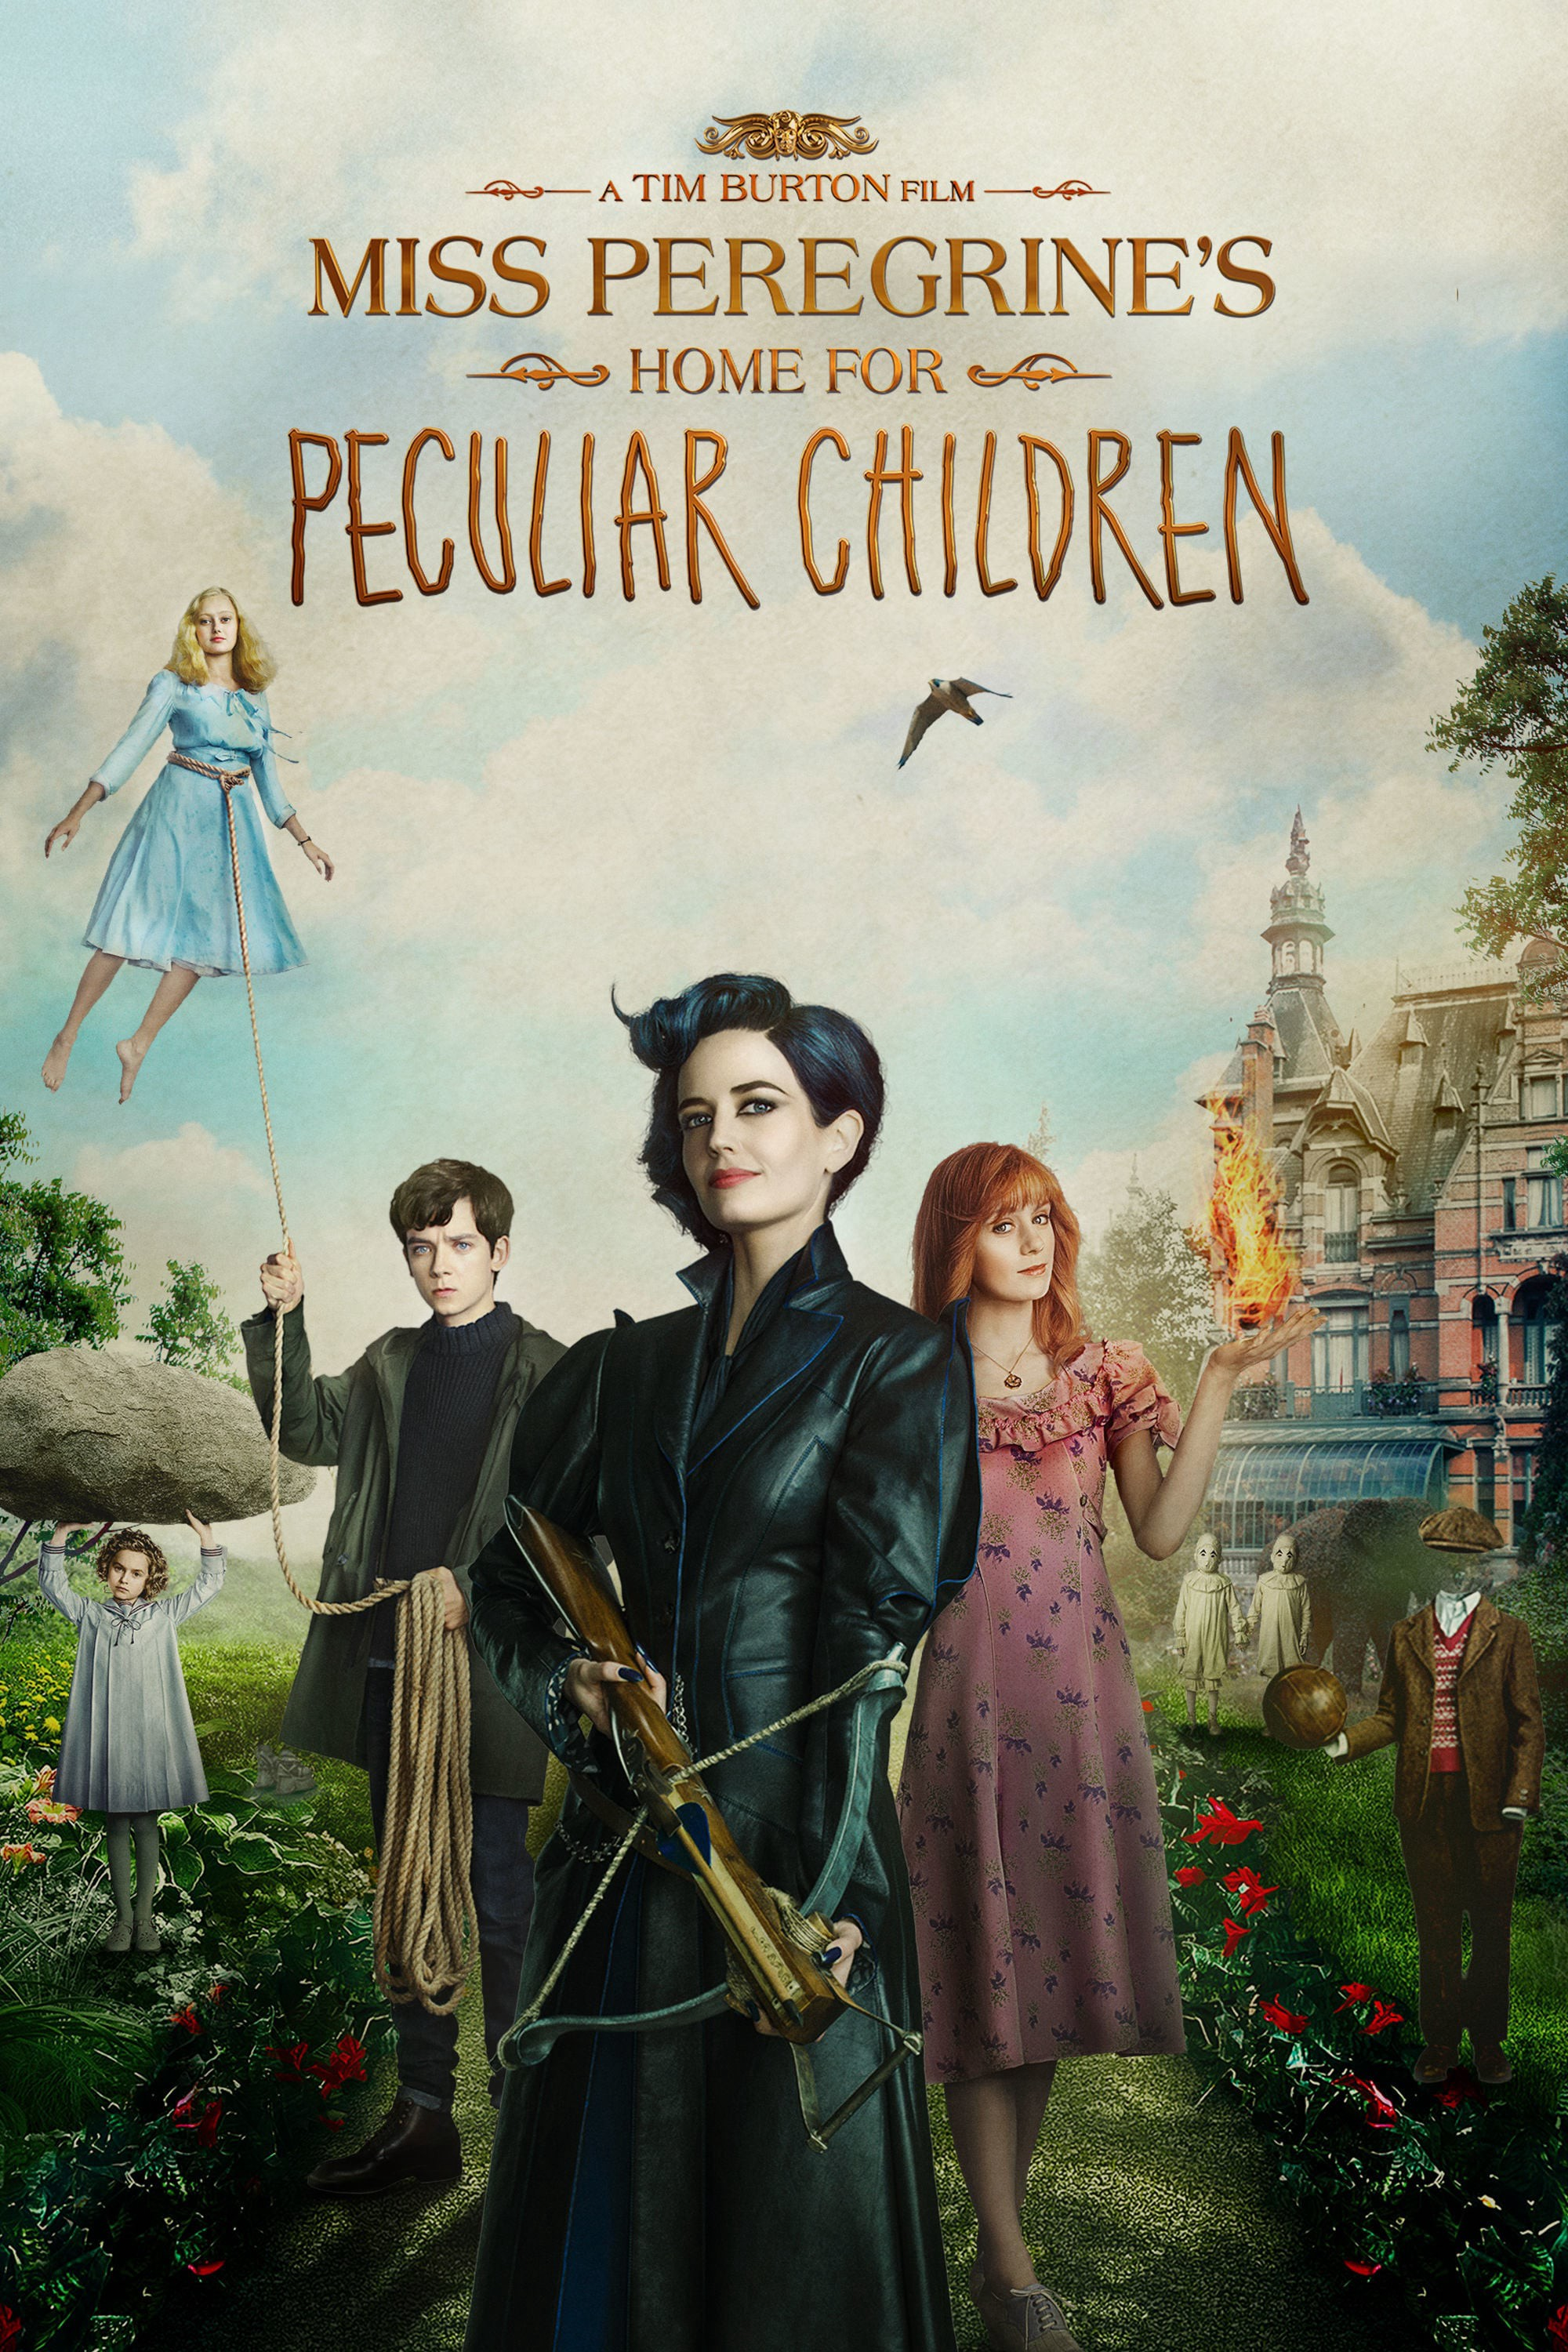 miss peregrines home for peculiar full movie online free